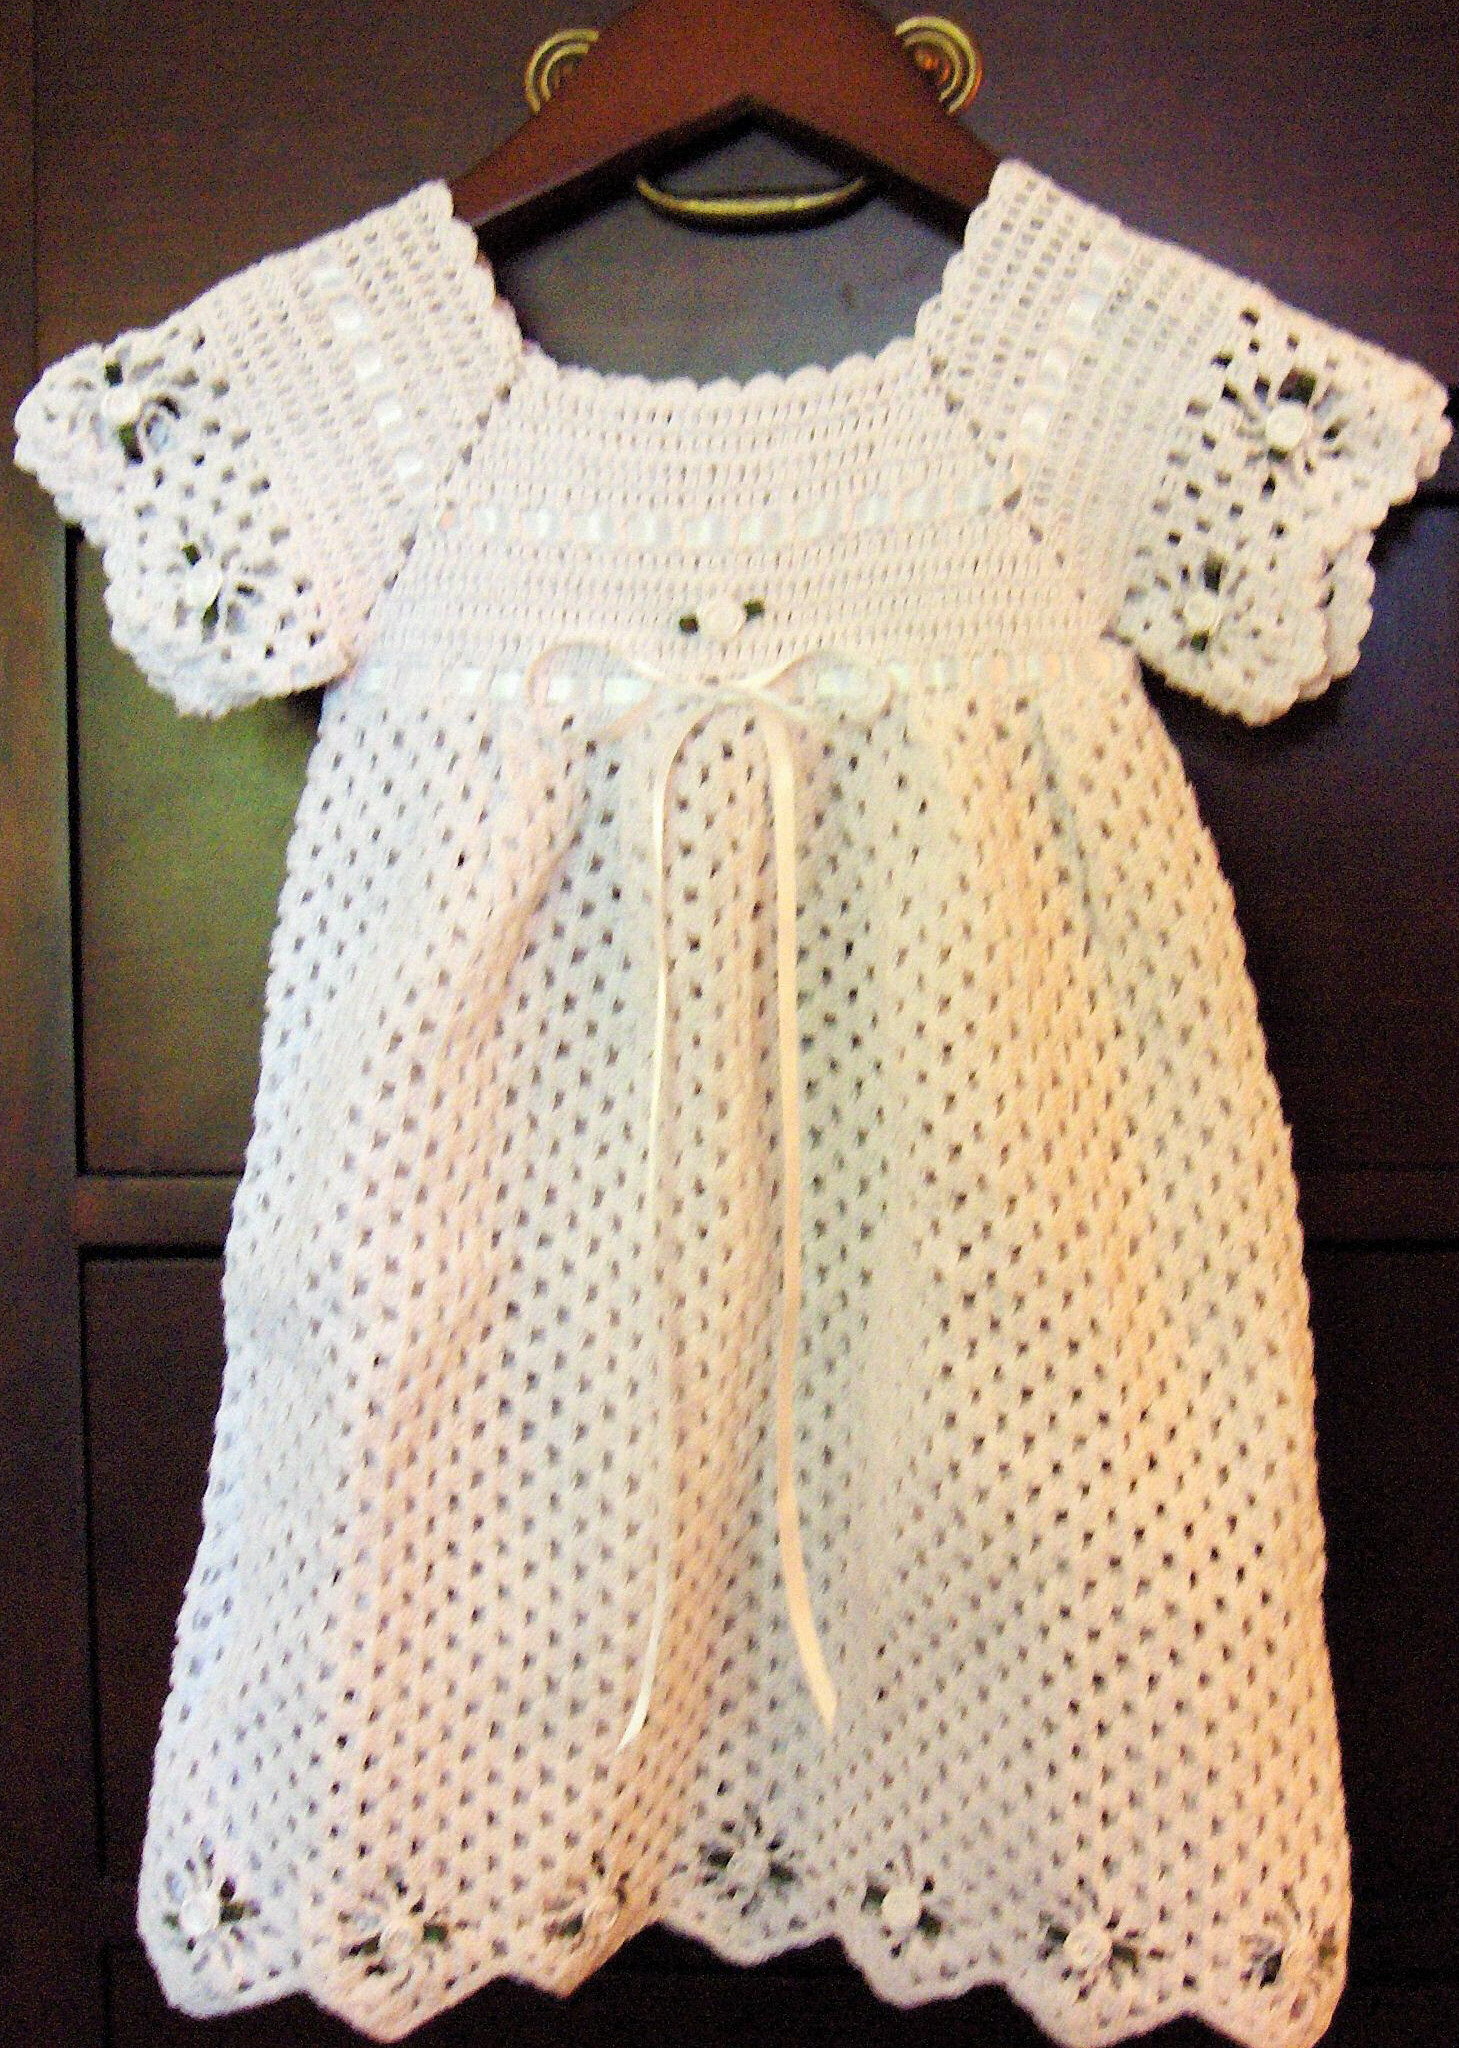 Crochet Baby Dress And Bonnet Pattern : HEIRLOOM CROCHET BONNET PATTERN ? Easy Crochet Patterns